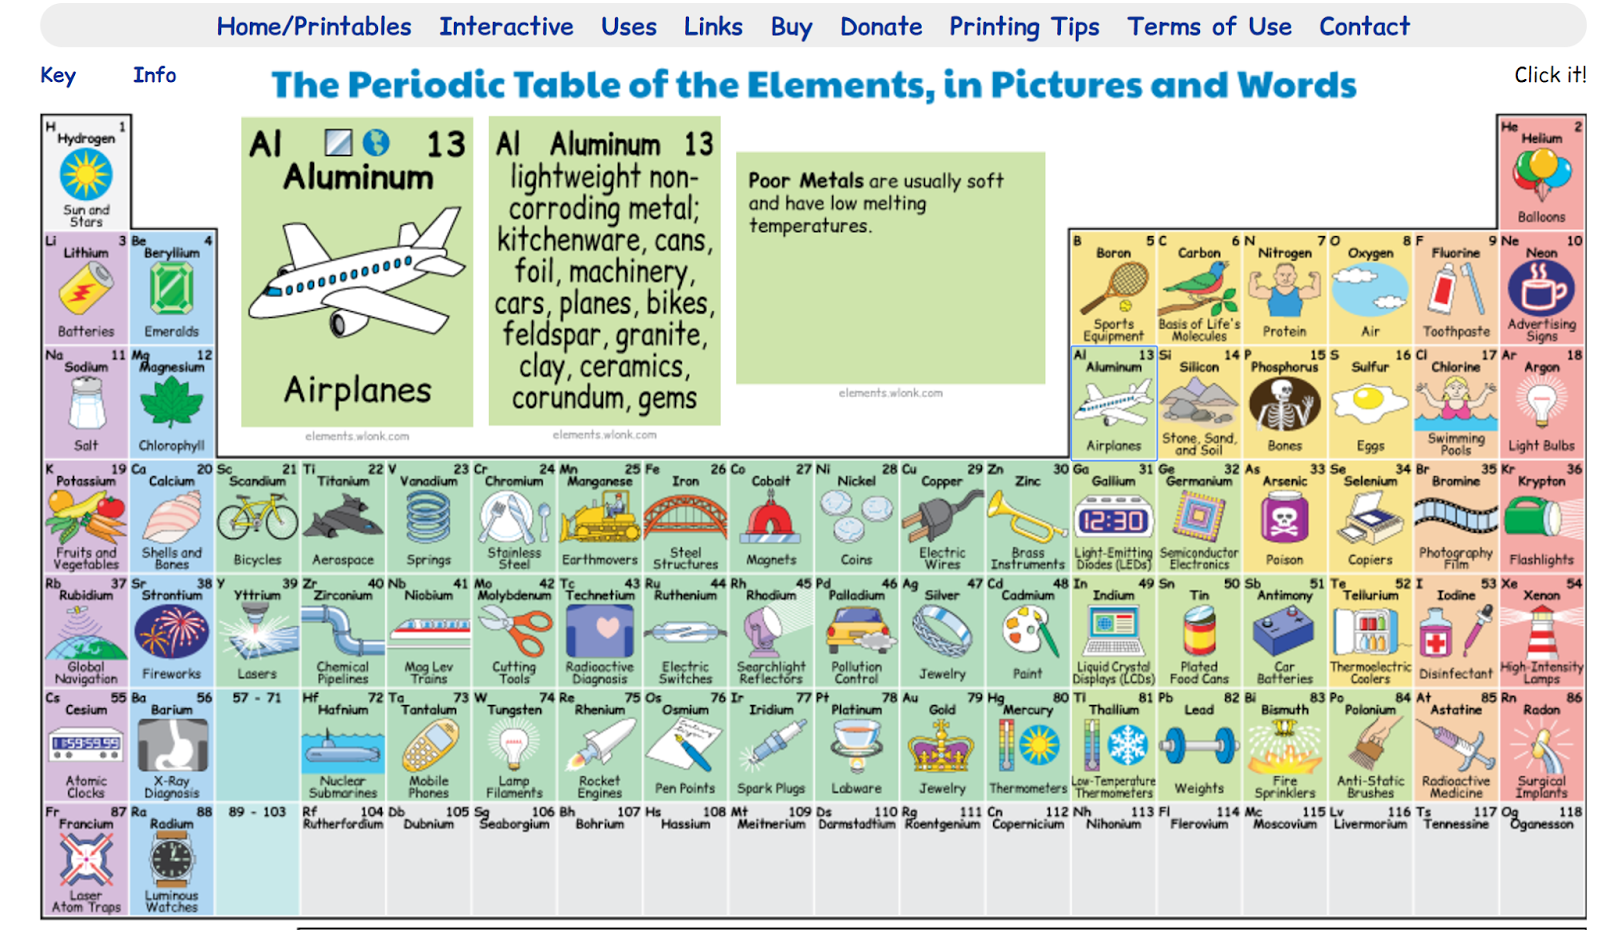 Free technology for teachers the periodic table in pictures and words the periodic table of elements in pictures and words could be a great resource for middle school science classrooms it also provides a nice model for an urtaz Gallery